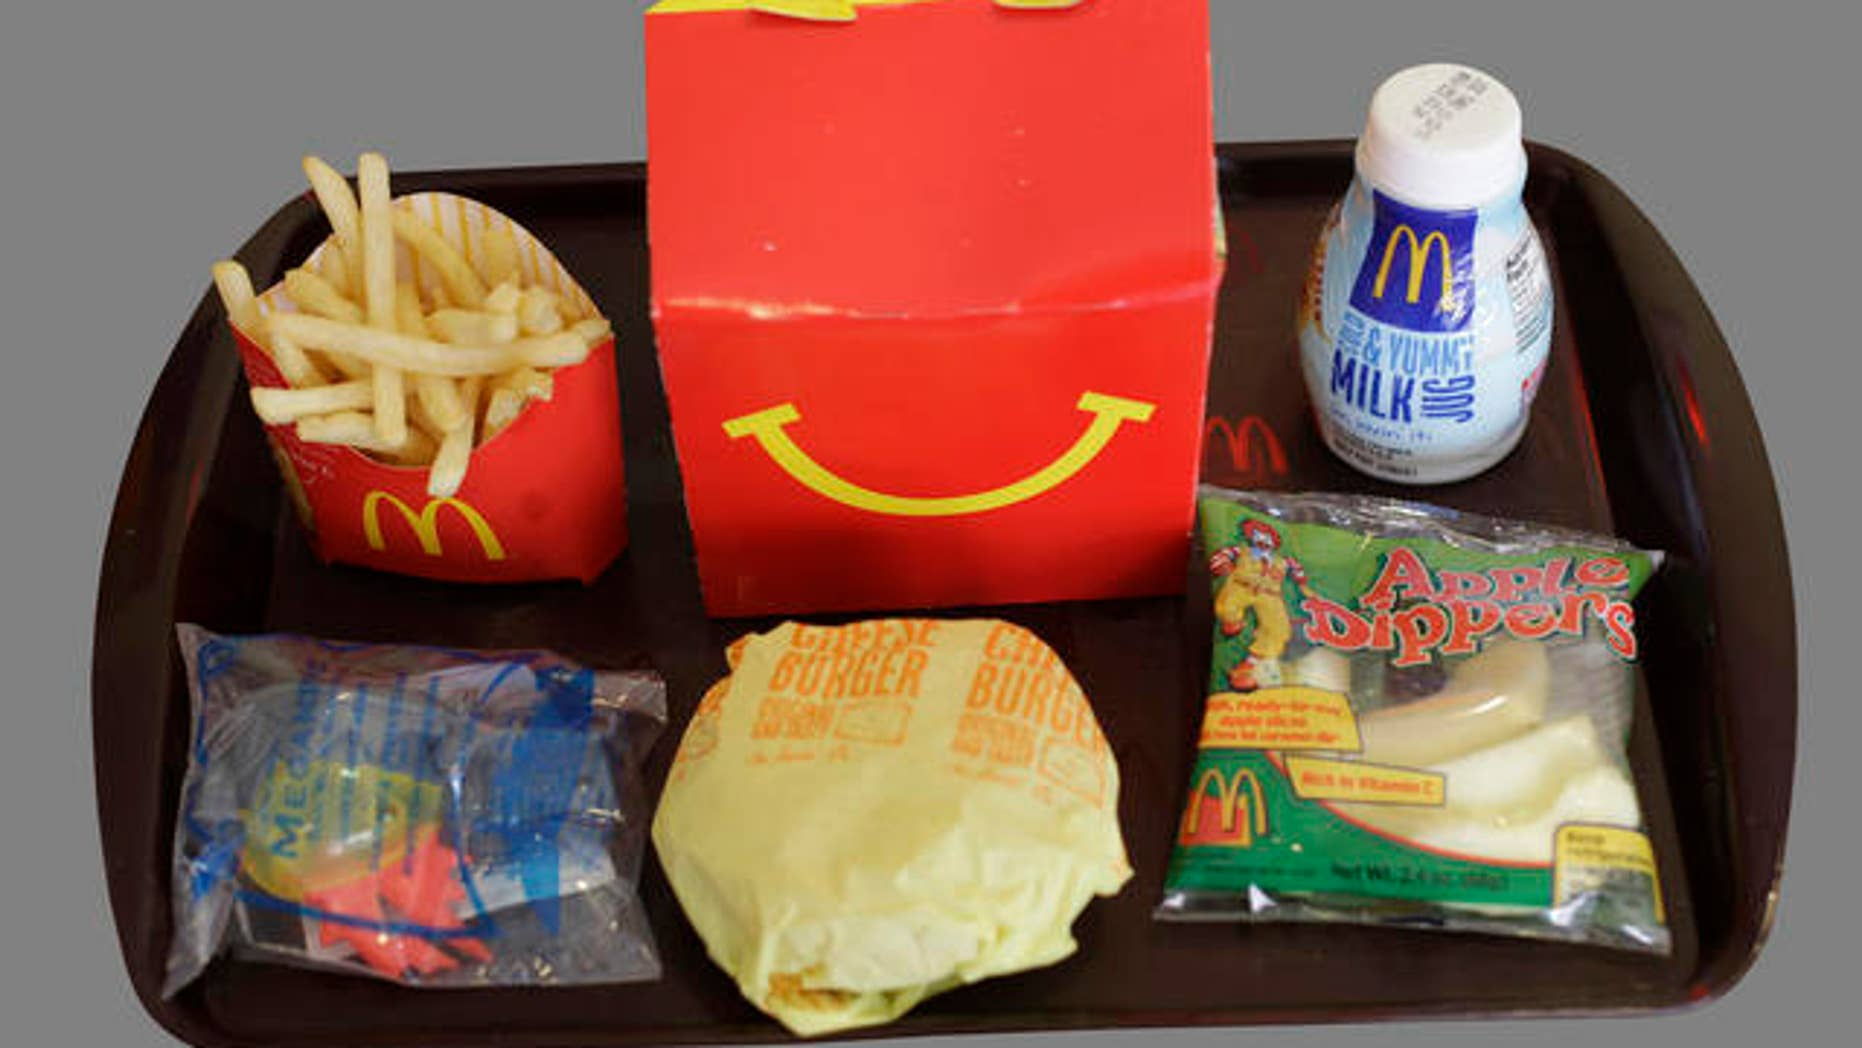 Shown is a Happy Meal at a McDonald's restaurant in San Francisco, Monday, Nov. 8, 2010. In the left foreground is a character toy included with the meal from the movie Megamind. It is a happy moment for people who see the Happy Meal as anything but.  San Francisco is poised to become the first major American city to require fast-food restaurants to sell meals that meet set nutritional guidelines or not include a toy with them. (AP Photo/Eric Risberg)